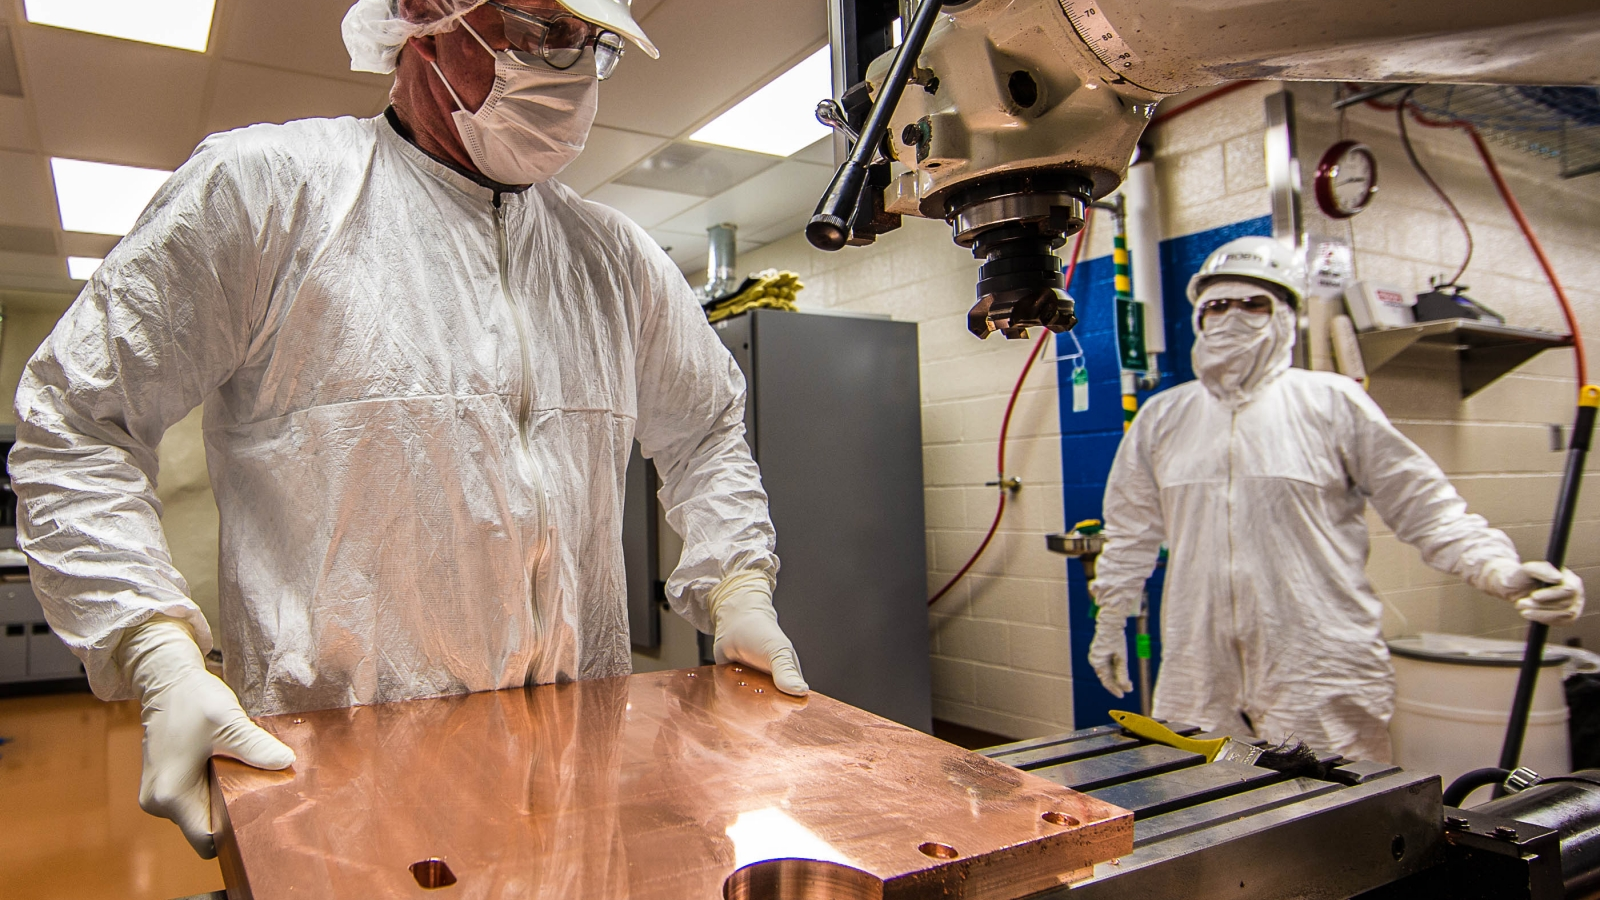 Machinist examines a copper plate